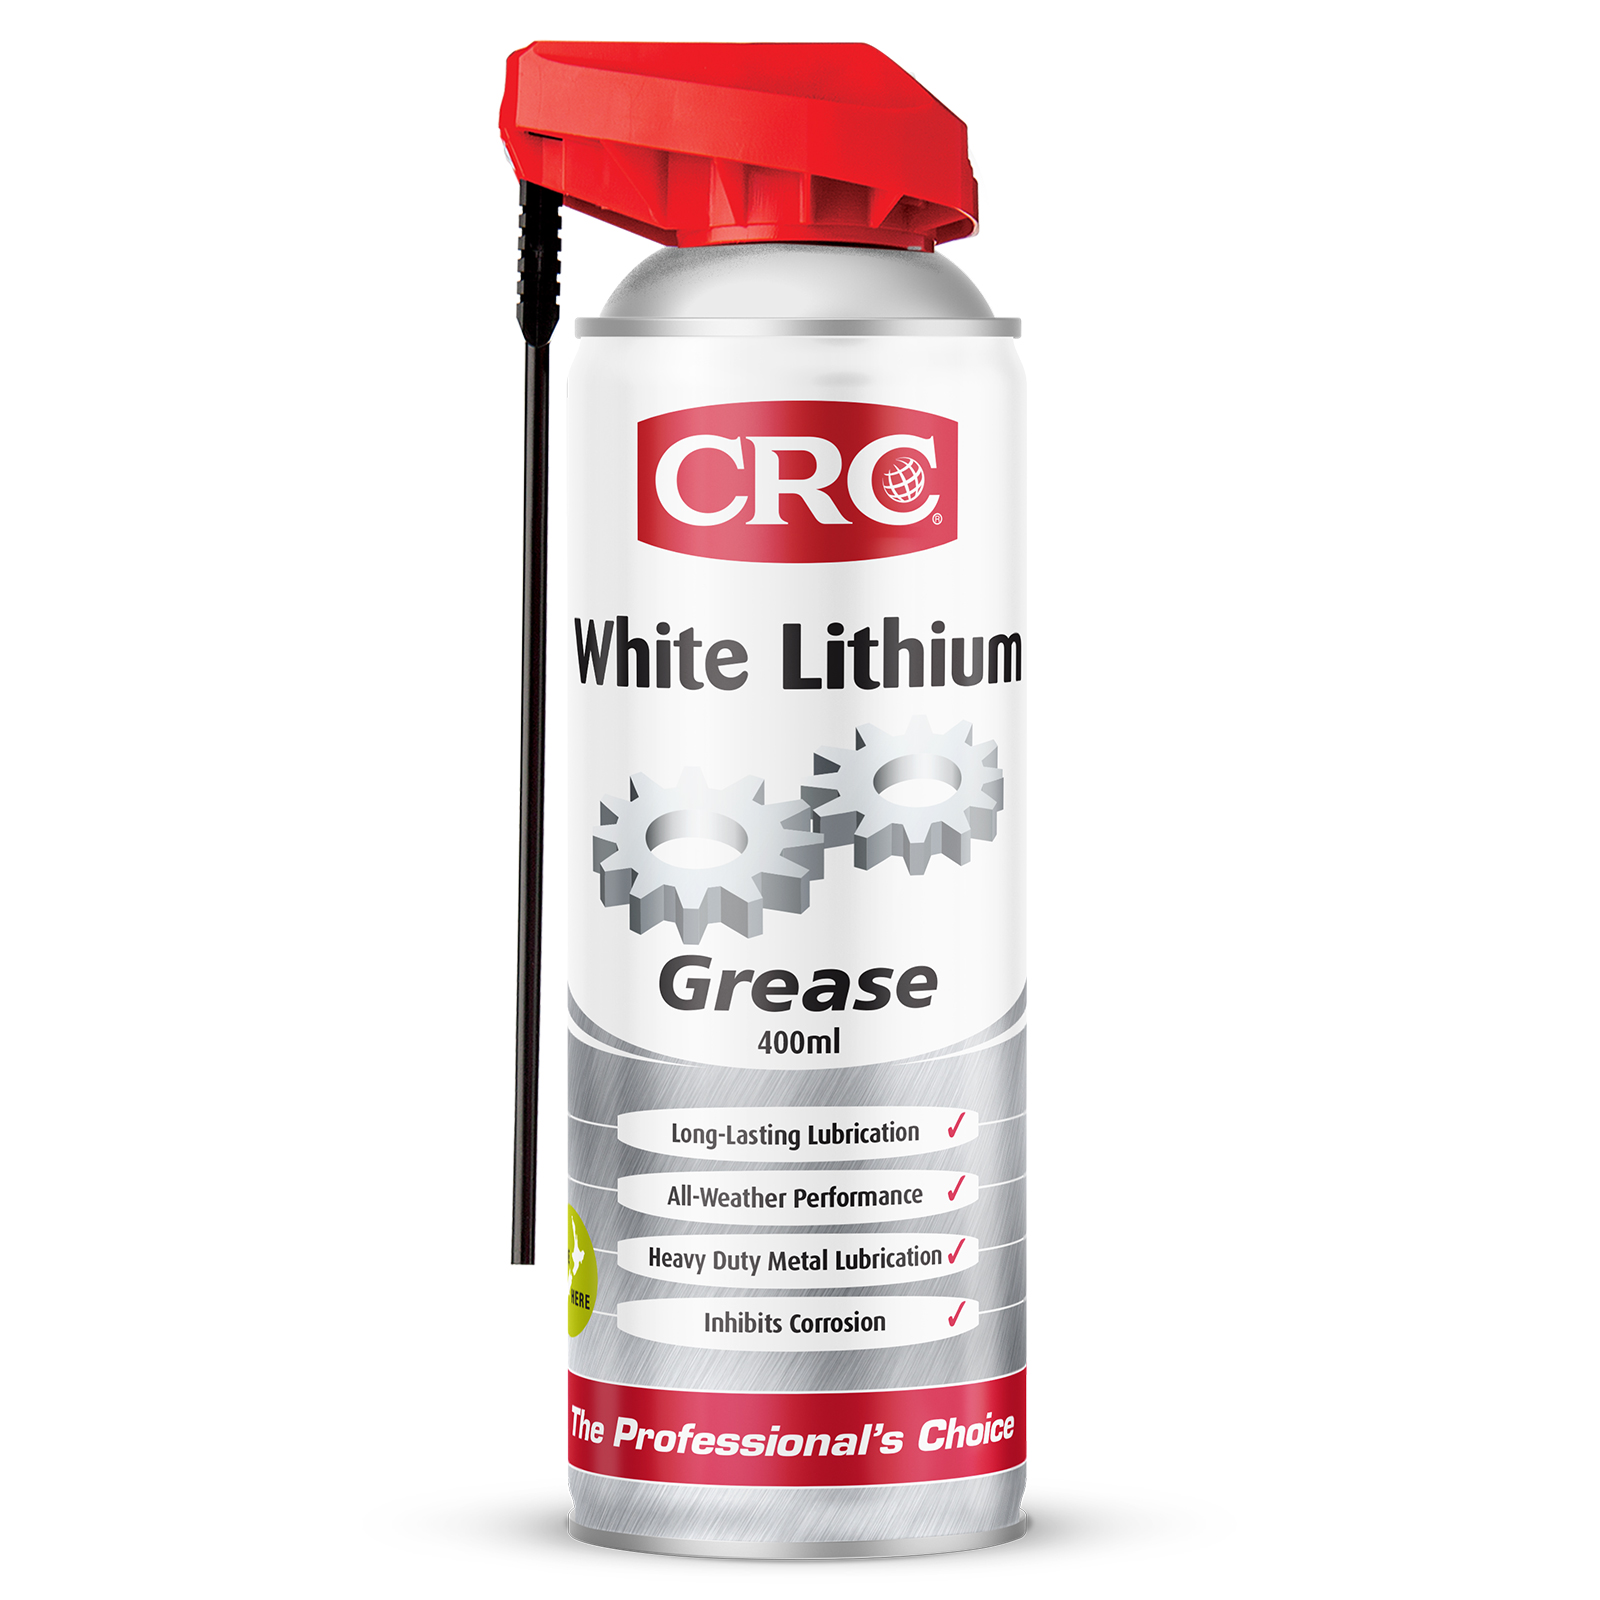 White Lithium Multi Purpose Grease Aerosol Spray NZ